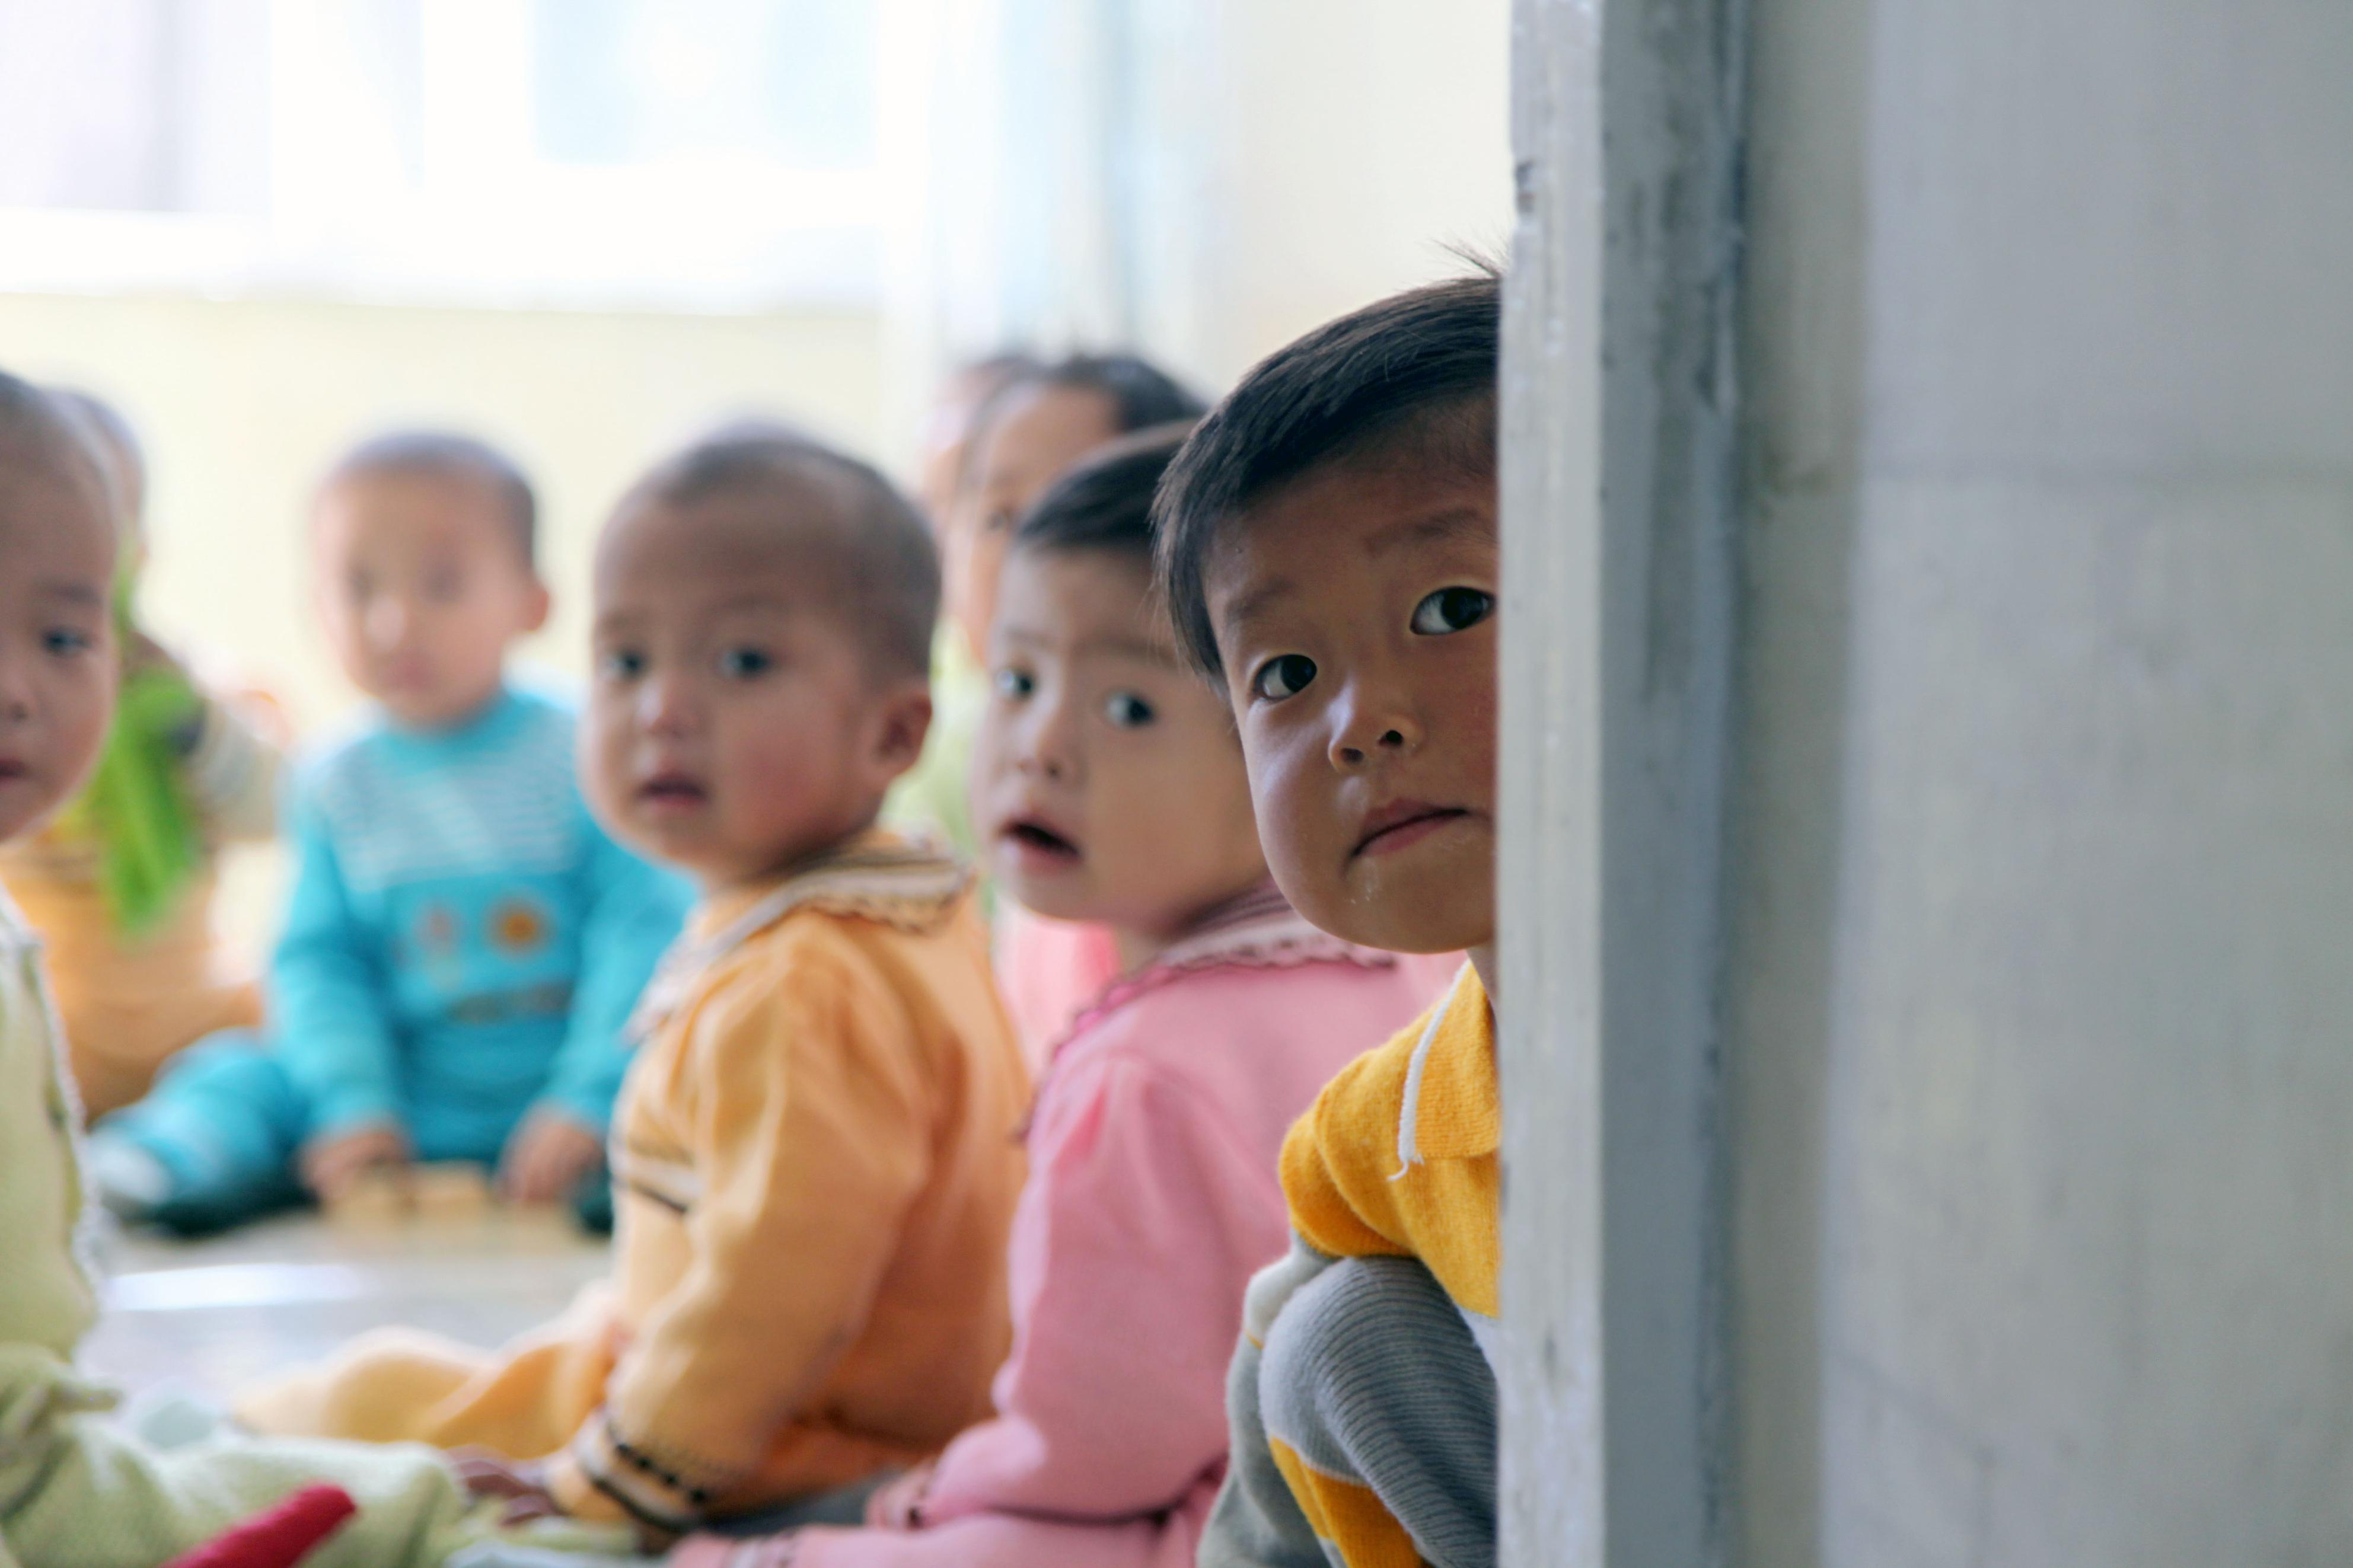 North Korean daycare supported by WFP, UNICEF (U.N.)